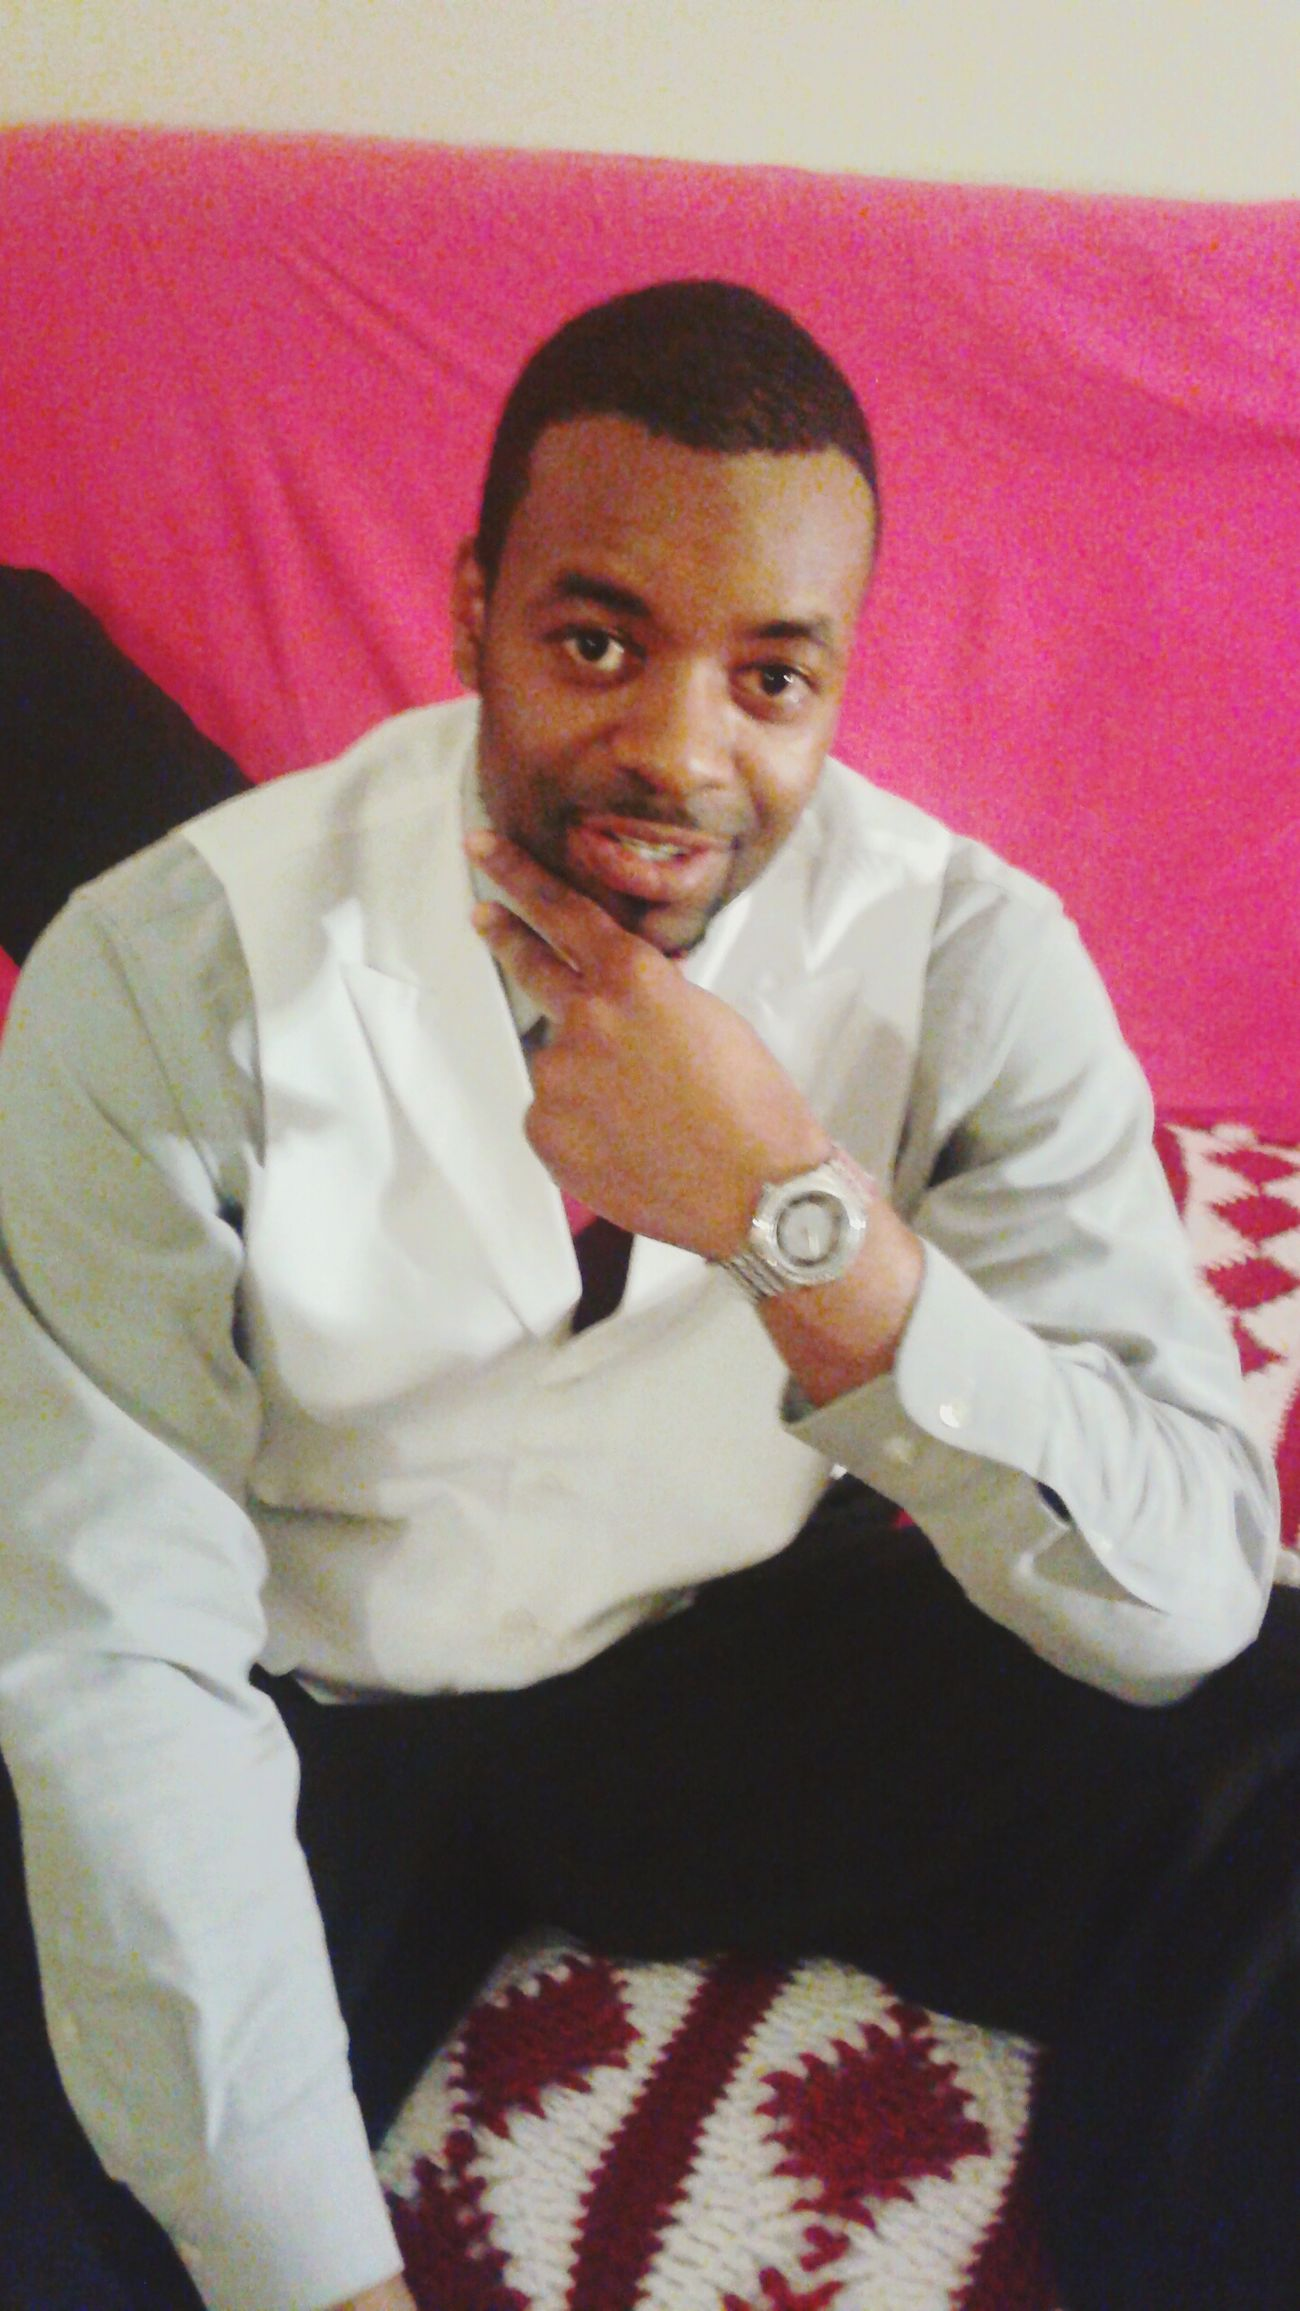 Me Chilling Follow Relaxedmindbodyandspirit Throwbackthursday  Dressed Up Casualife' Cool Guy Humbled_blessed Hitmeup